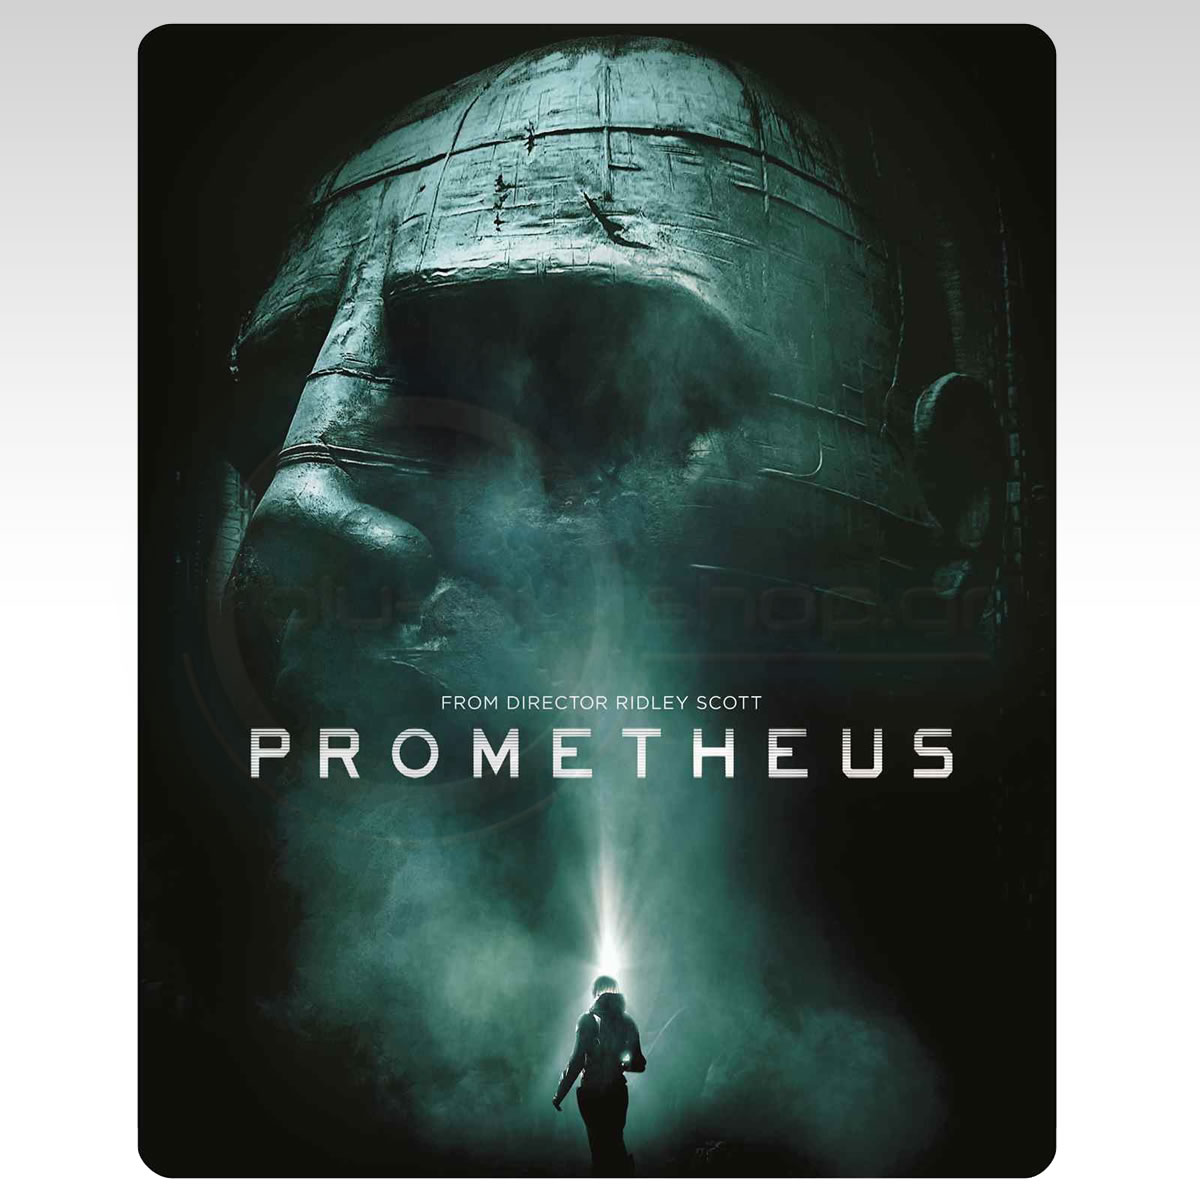 PROMETHEUS 3D - ��������� 3D Limited Collector's Edition Steelbook ������������ [��������� �� ���������� ����������] (BLU-RAY 3D + 2 BLU-RAY)